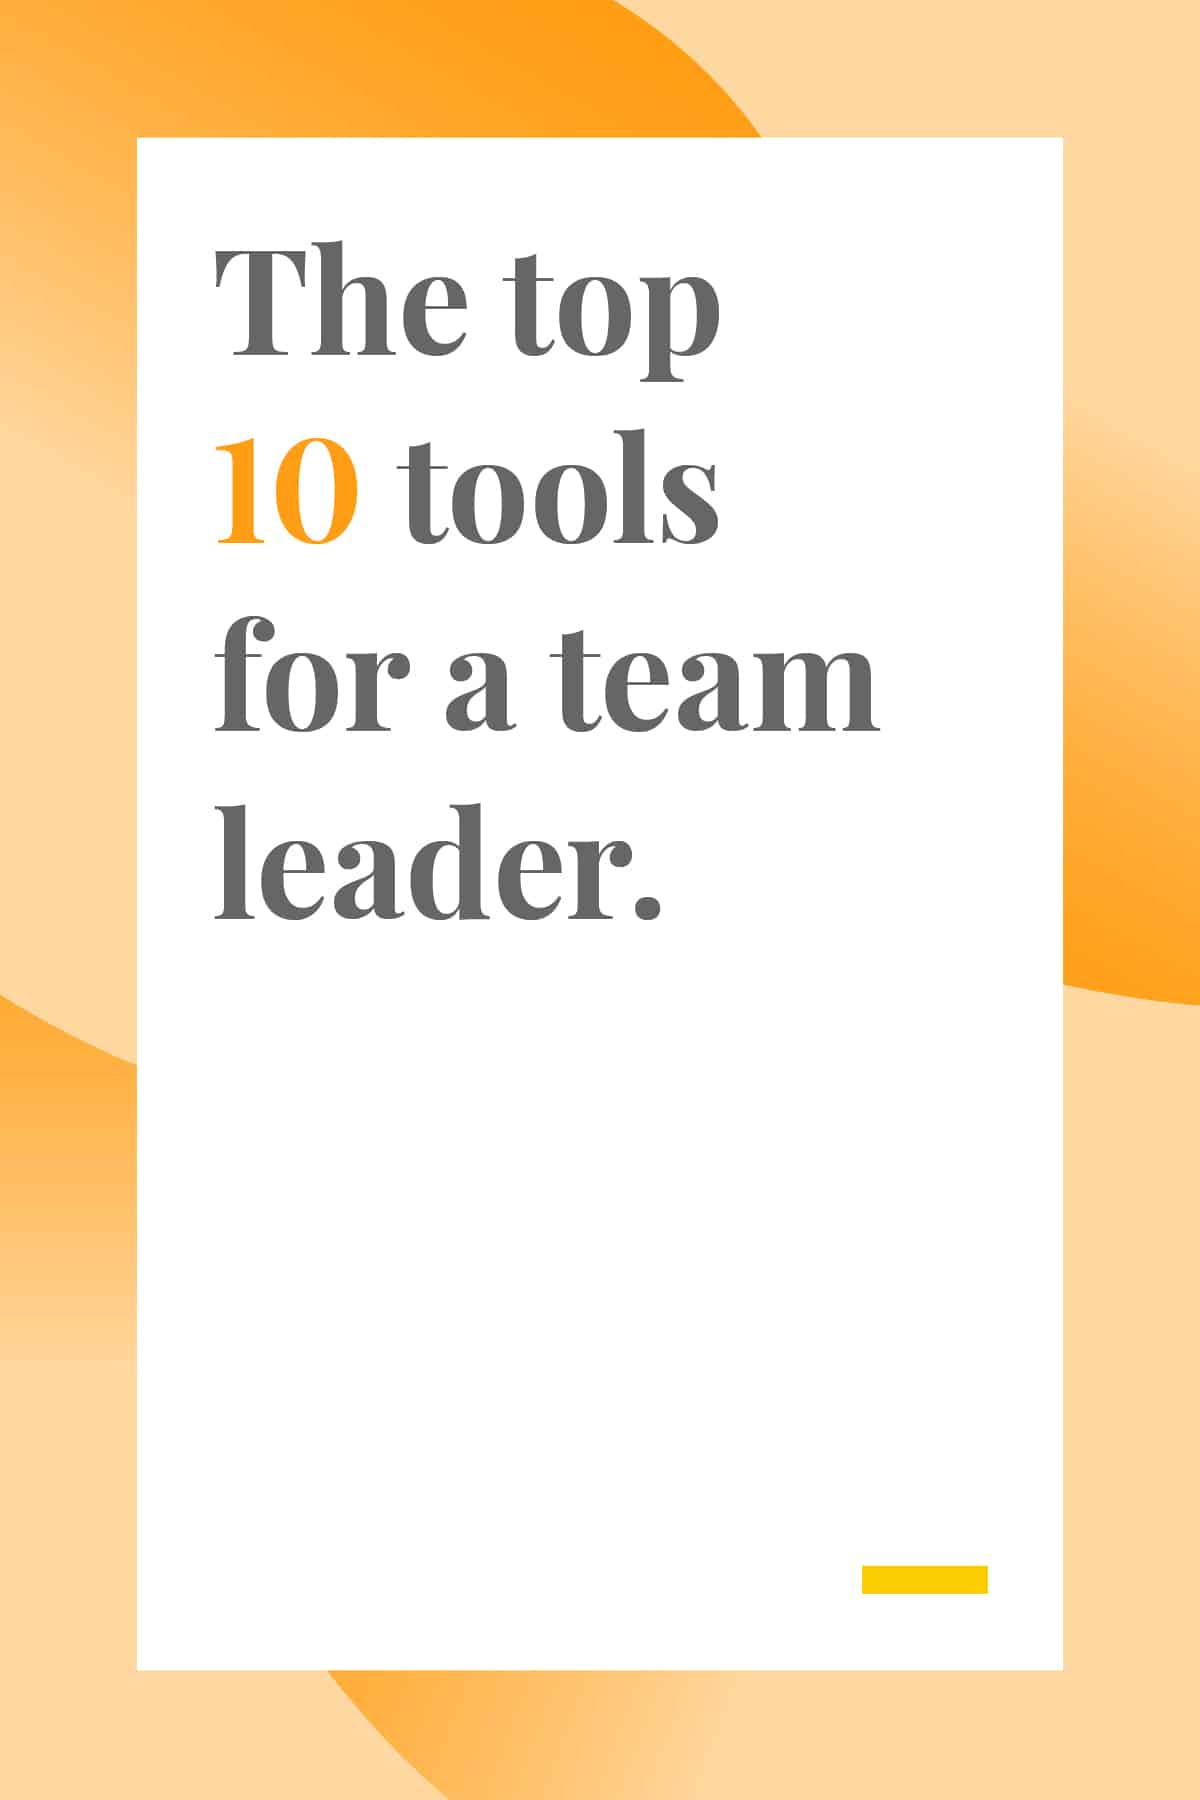 If you're a team leader, don't miss this list of essential leadership and planning tools. Get your team organized and improve productivity with these 10 tools. #leadership #businesstools